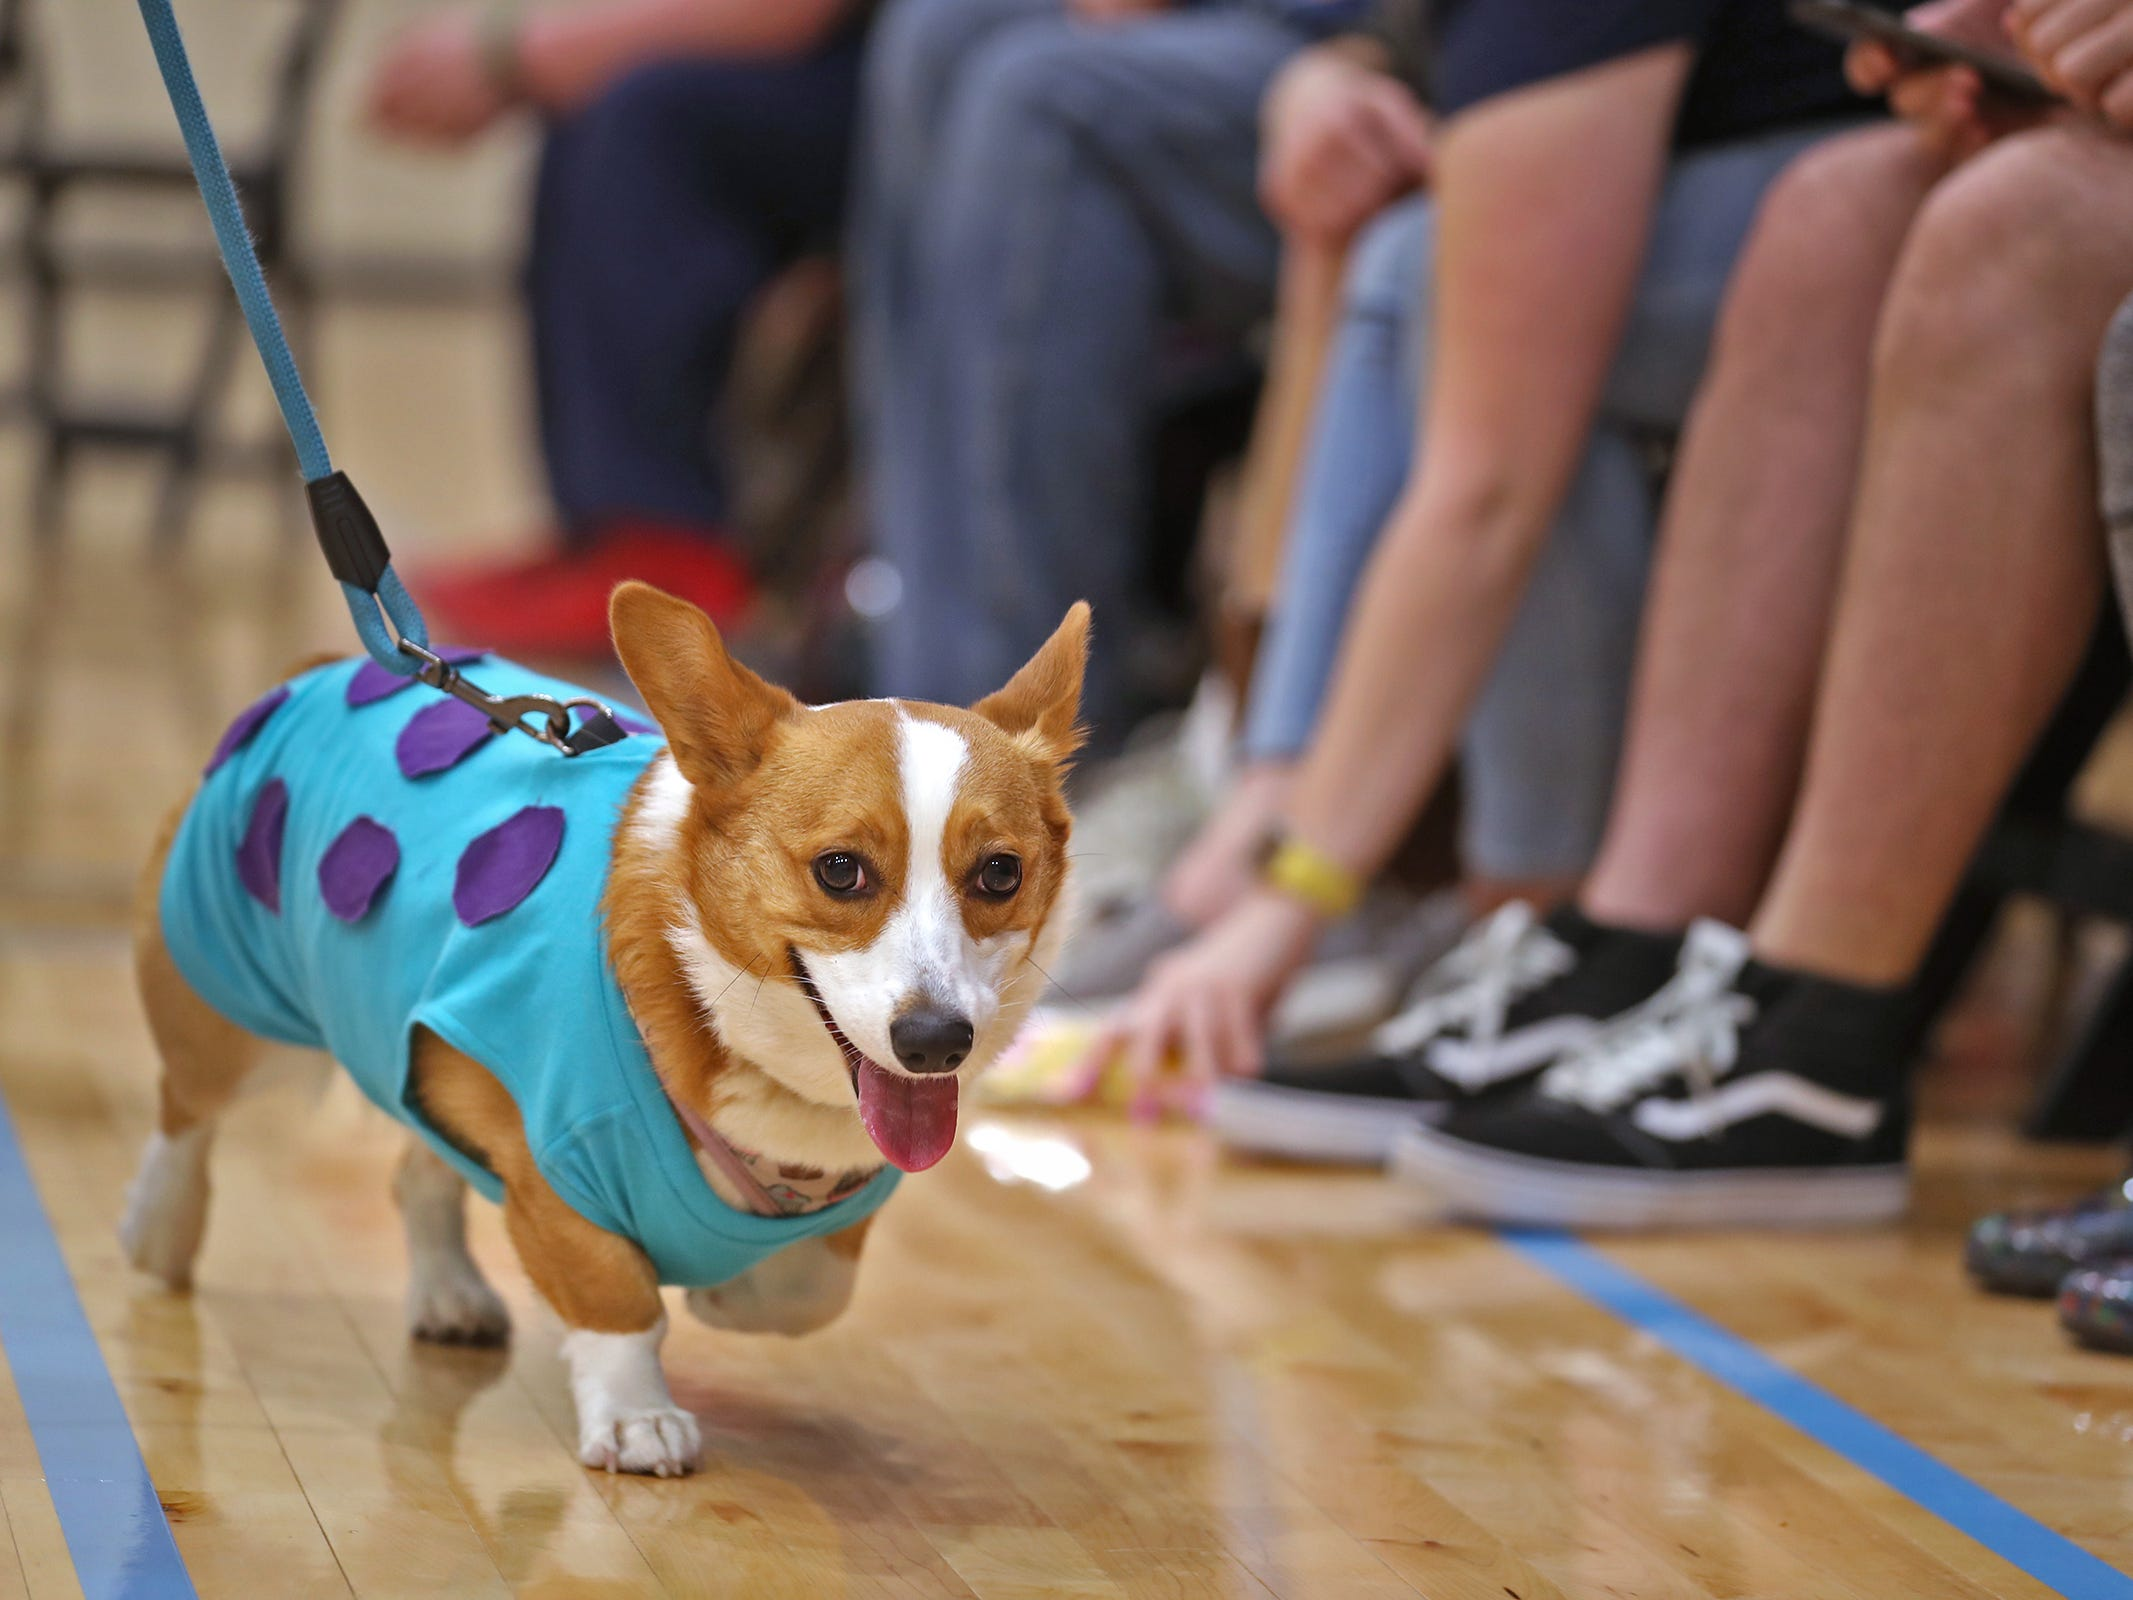 Ivy walks the runway in the costume contest at the Indianapolis Corgi Limbo & Costume Contest at IUPUI, Sunday, April 14, 2019.  The event benefits children orphaned by HIV/AIDS in eSwatini, Africa.  It is presented by the Give Hope, Fight Poverty IUPUI chapter.